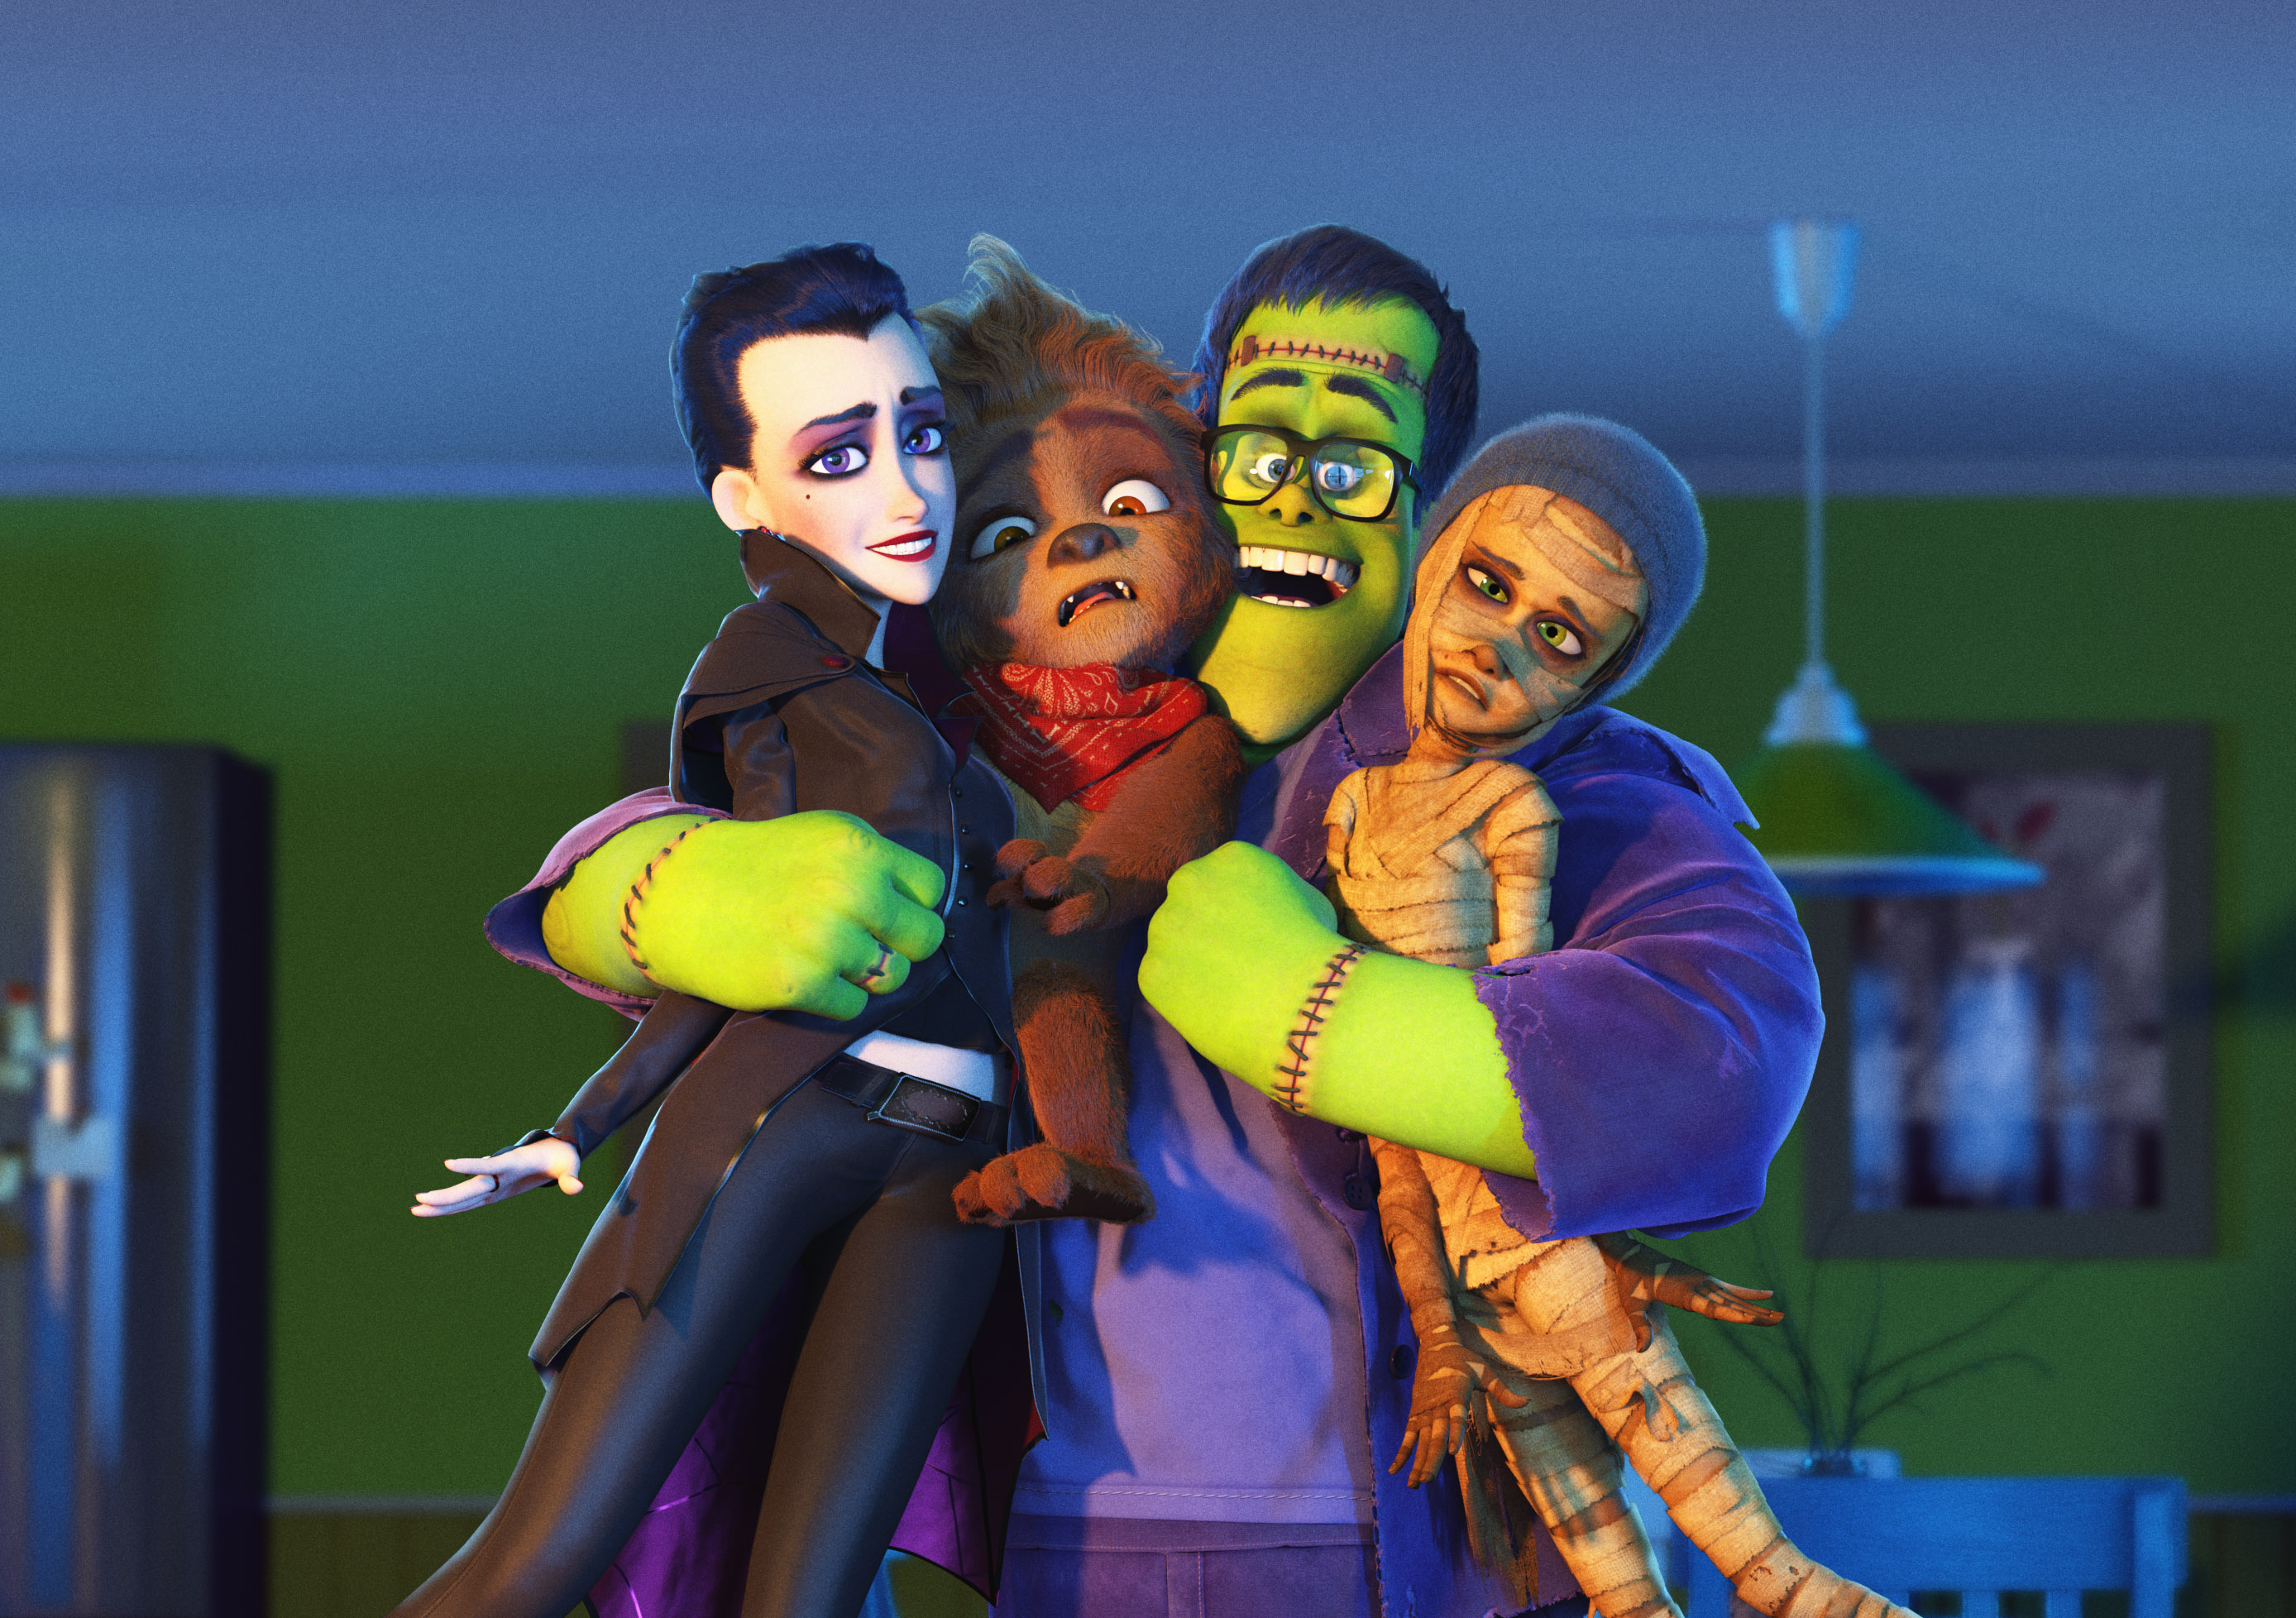 Happy Family Macation - Turning Into Monsters Can Make You One Big Happy Family